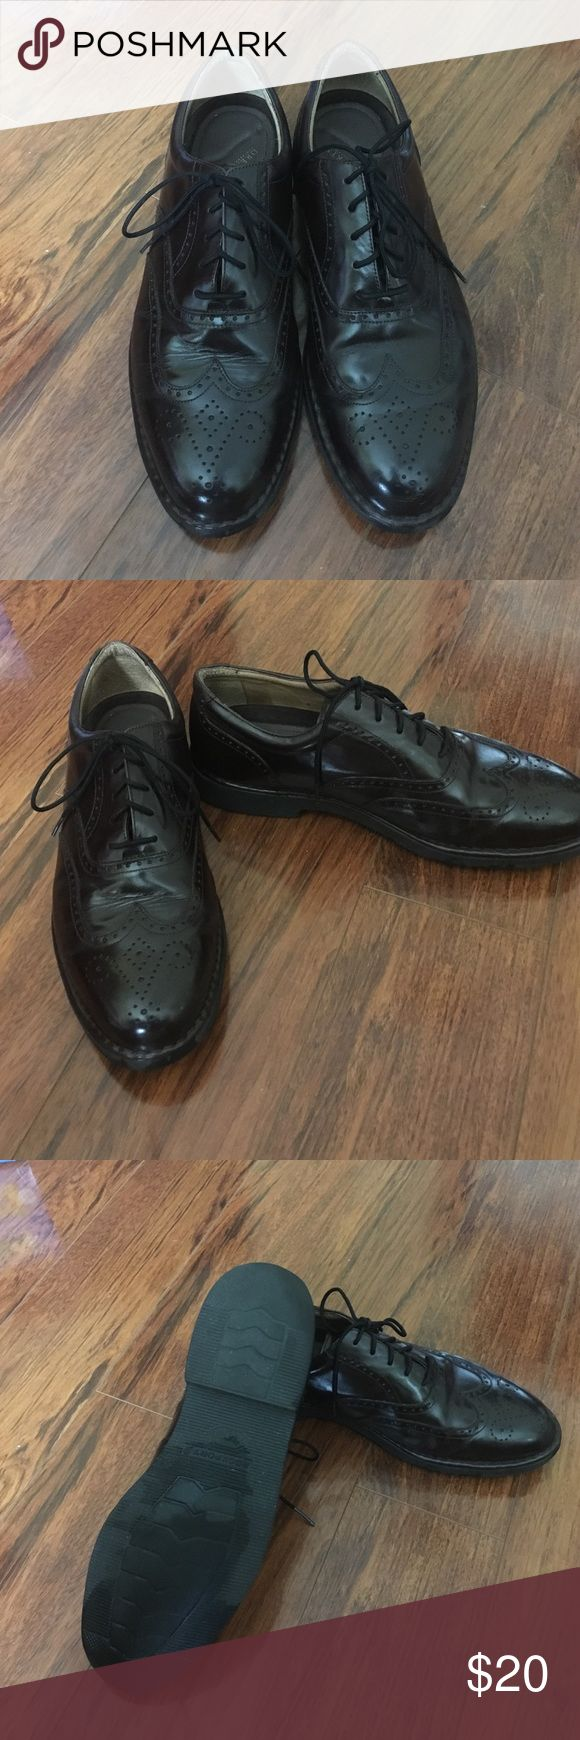 Men's Rockport Shoes Dress sports comfortable men's shoes Rockport Shoes Oxfords & Derbys